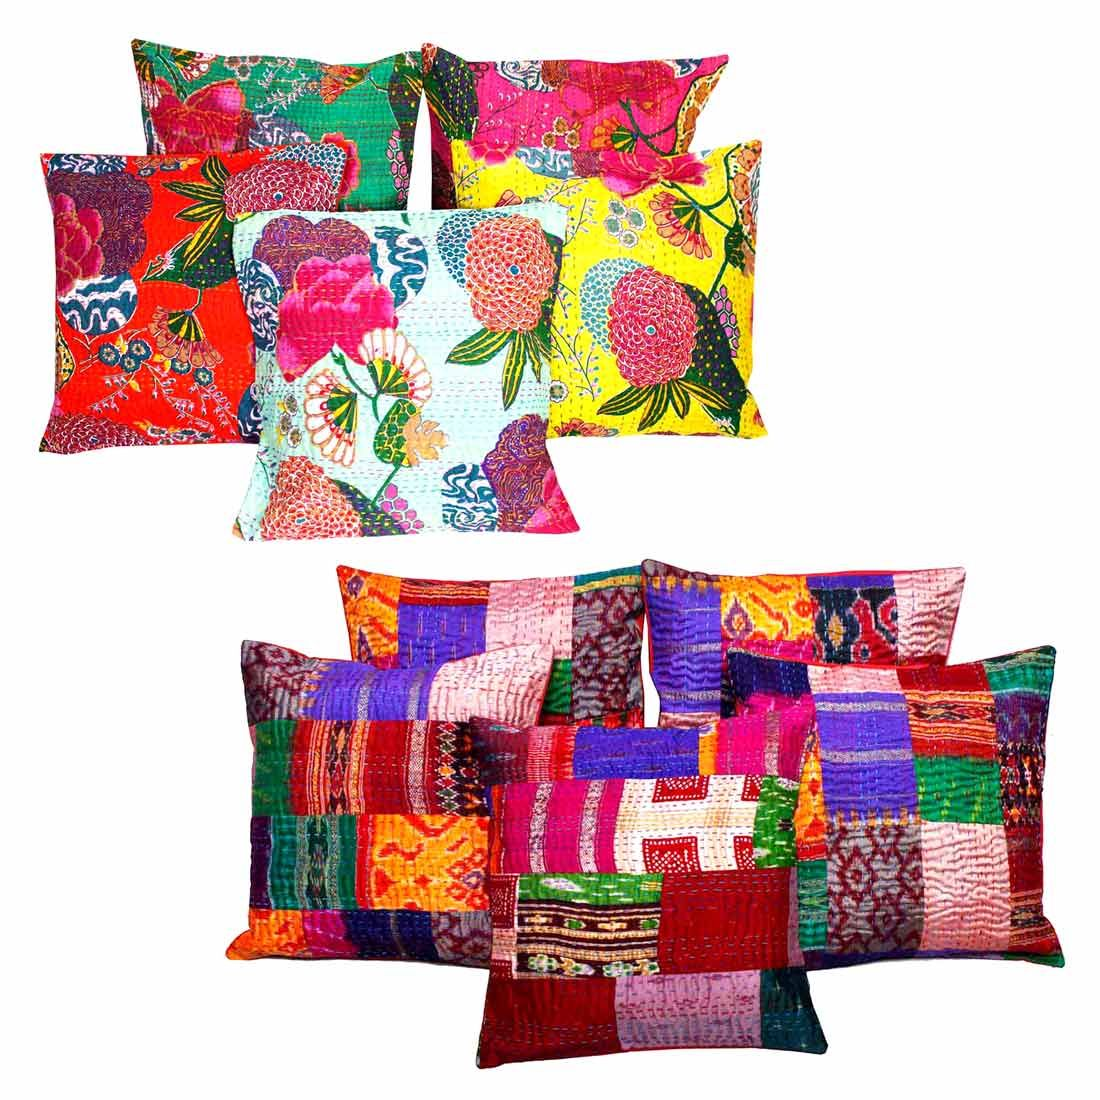 Get The of 10 Halowishes Jaipuri Handmade  Cotton Cushion Cover Set